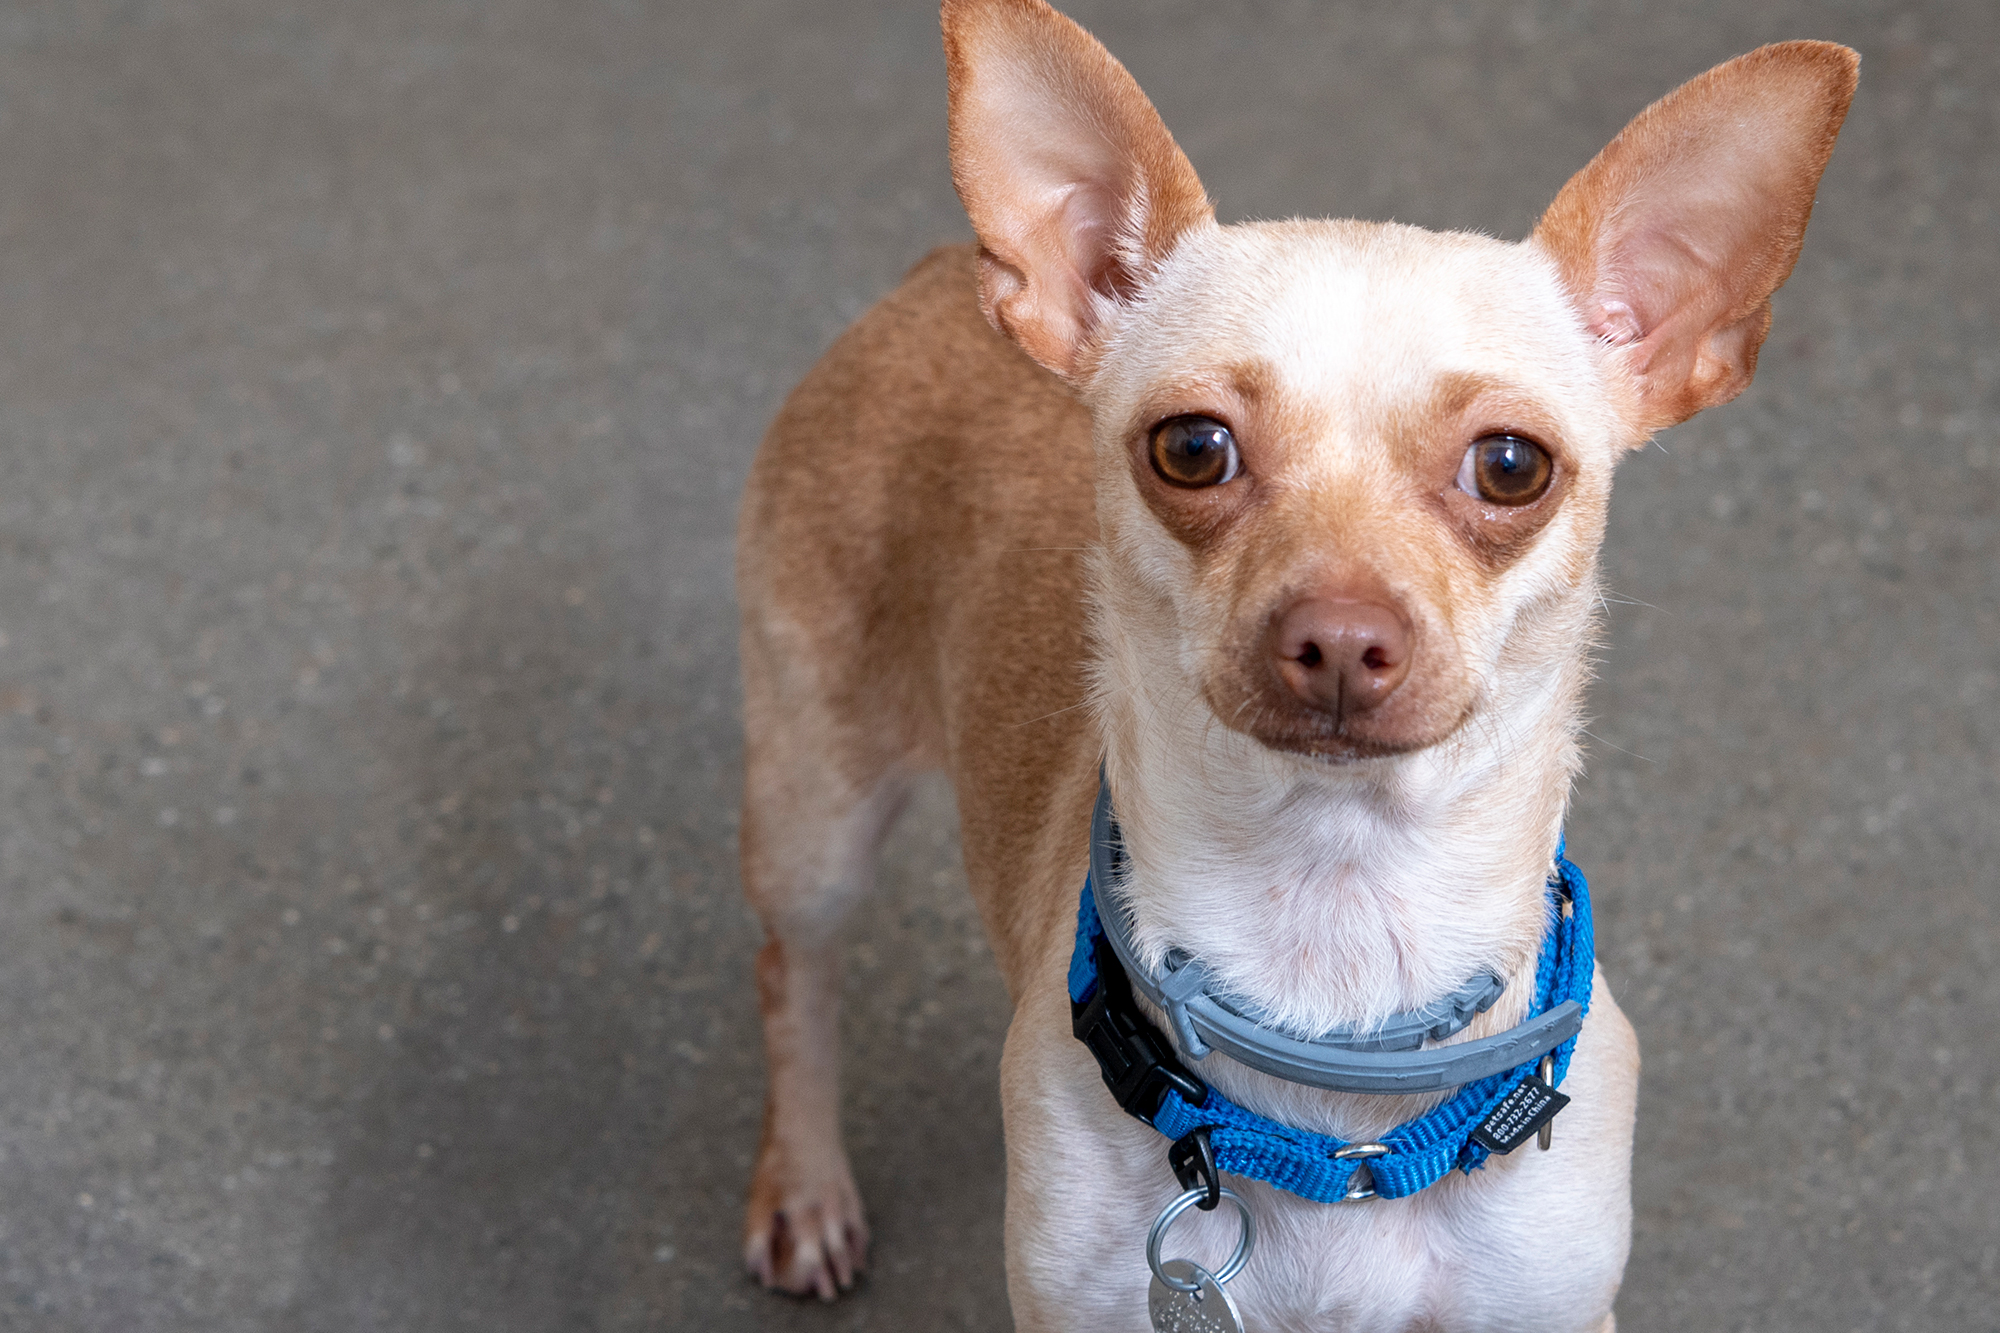 READY TO ADOPT? - Meet our adoptable animals →